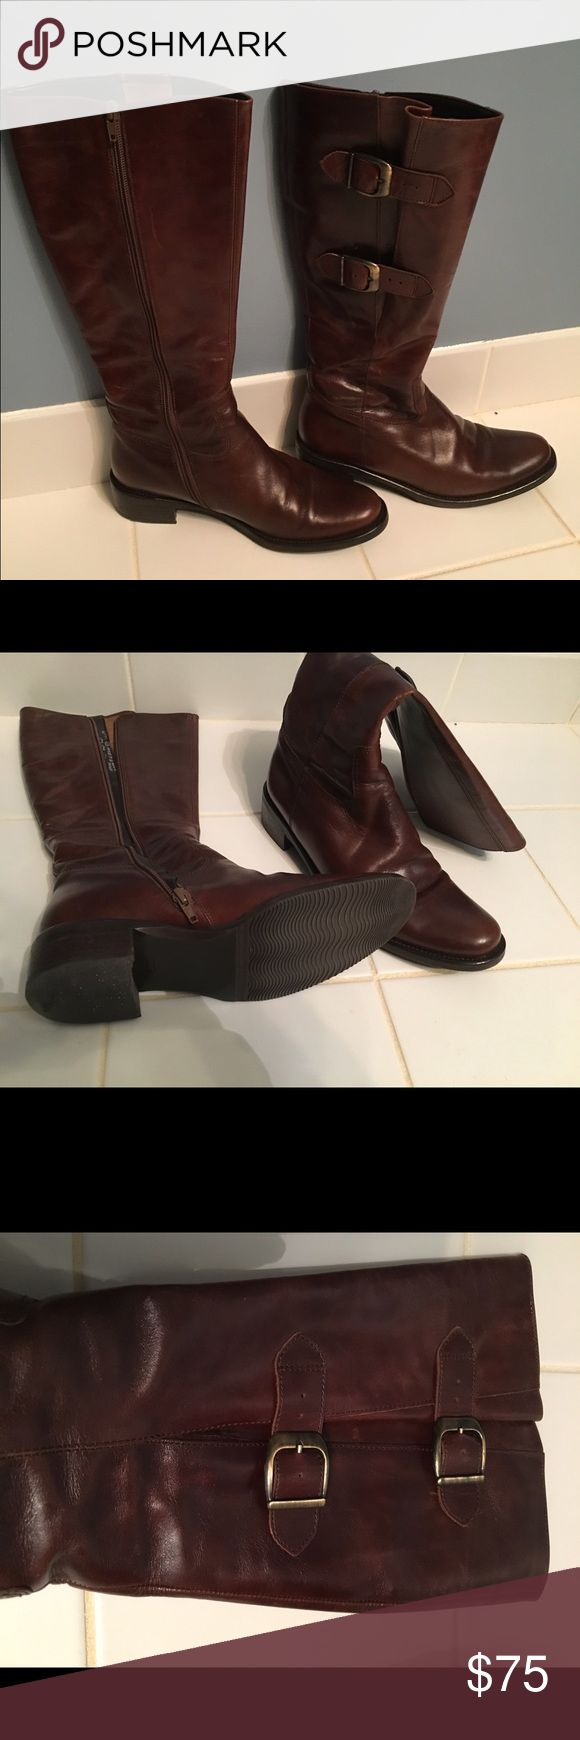 "Gabor Tall Boots size 7.5/8 Gabor Tall boots.  Believe the style is called ""Jenny"". Color is a dark brown.  They are listed as US size 6.5 but this seems to be an error. I wear a 7.5 and they fit me fine. Buckle can be adjusted to fit a wide calf. Maybe worn once. gabor Shoes Heeled Boots"